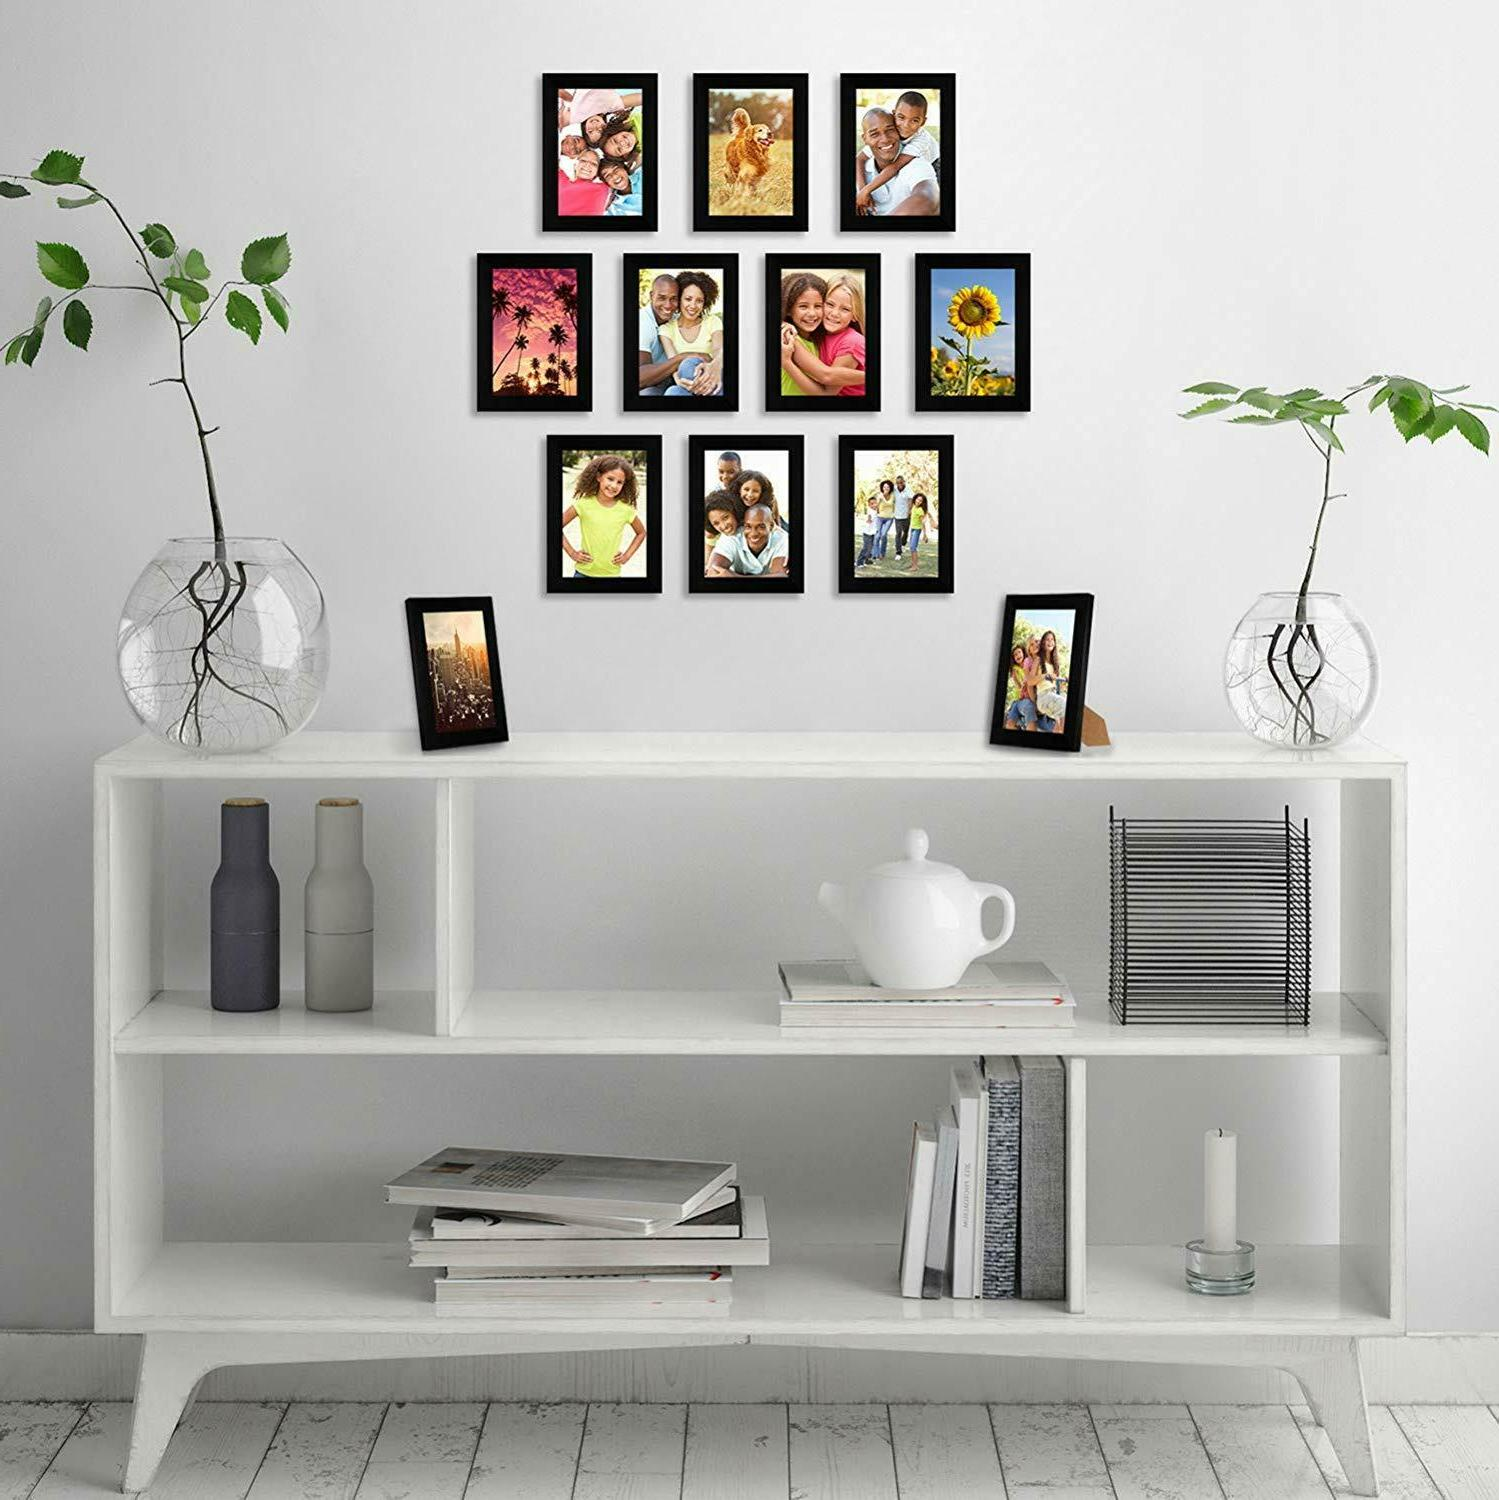 Americanflat 12 Pack - 4x6 Picture Display Inches